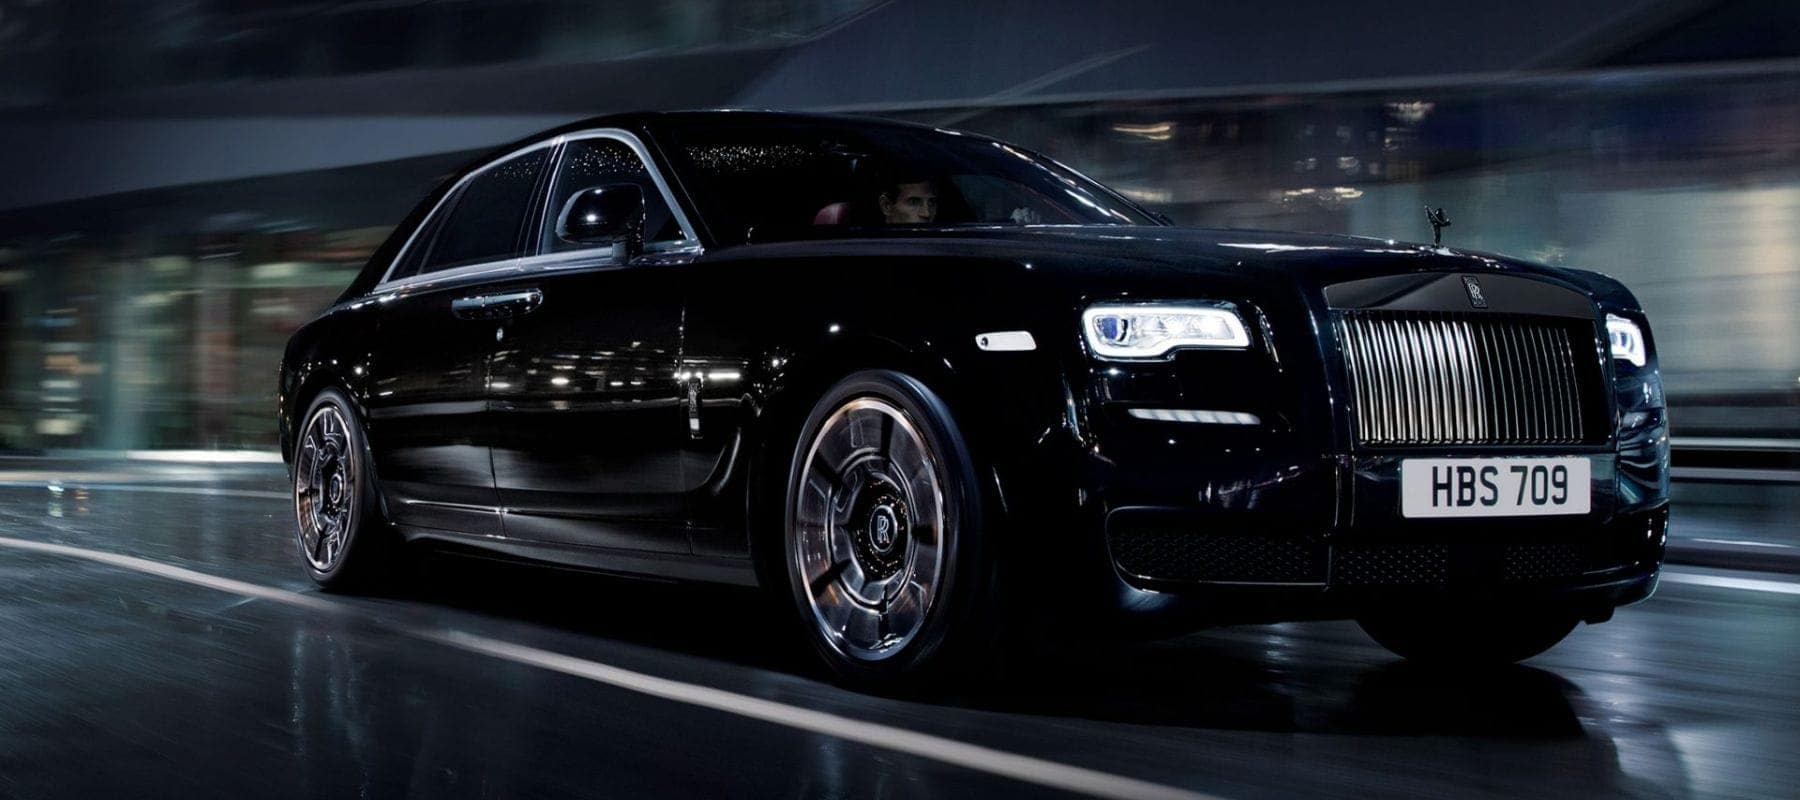 Angled view of a Rolls-Royce Ghost driving at night